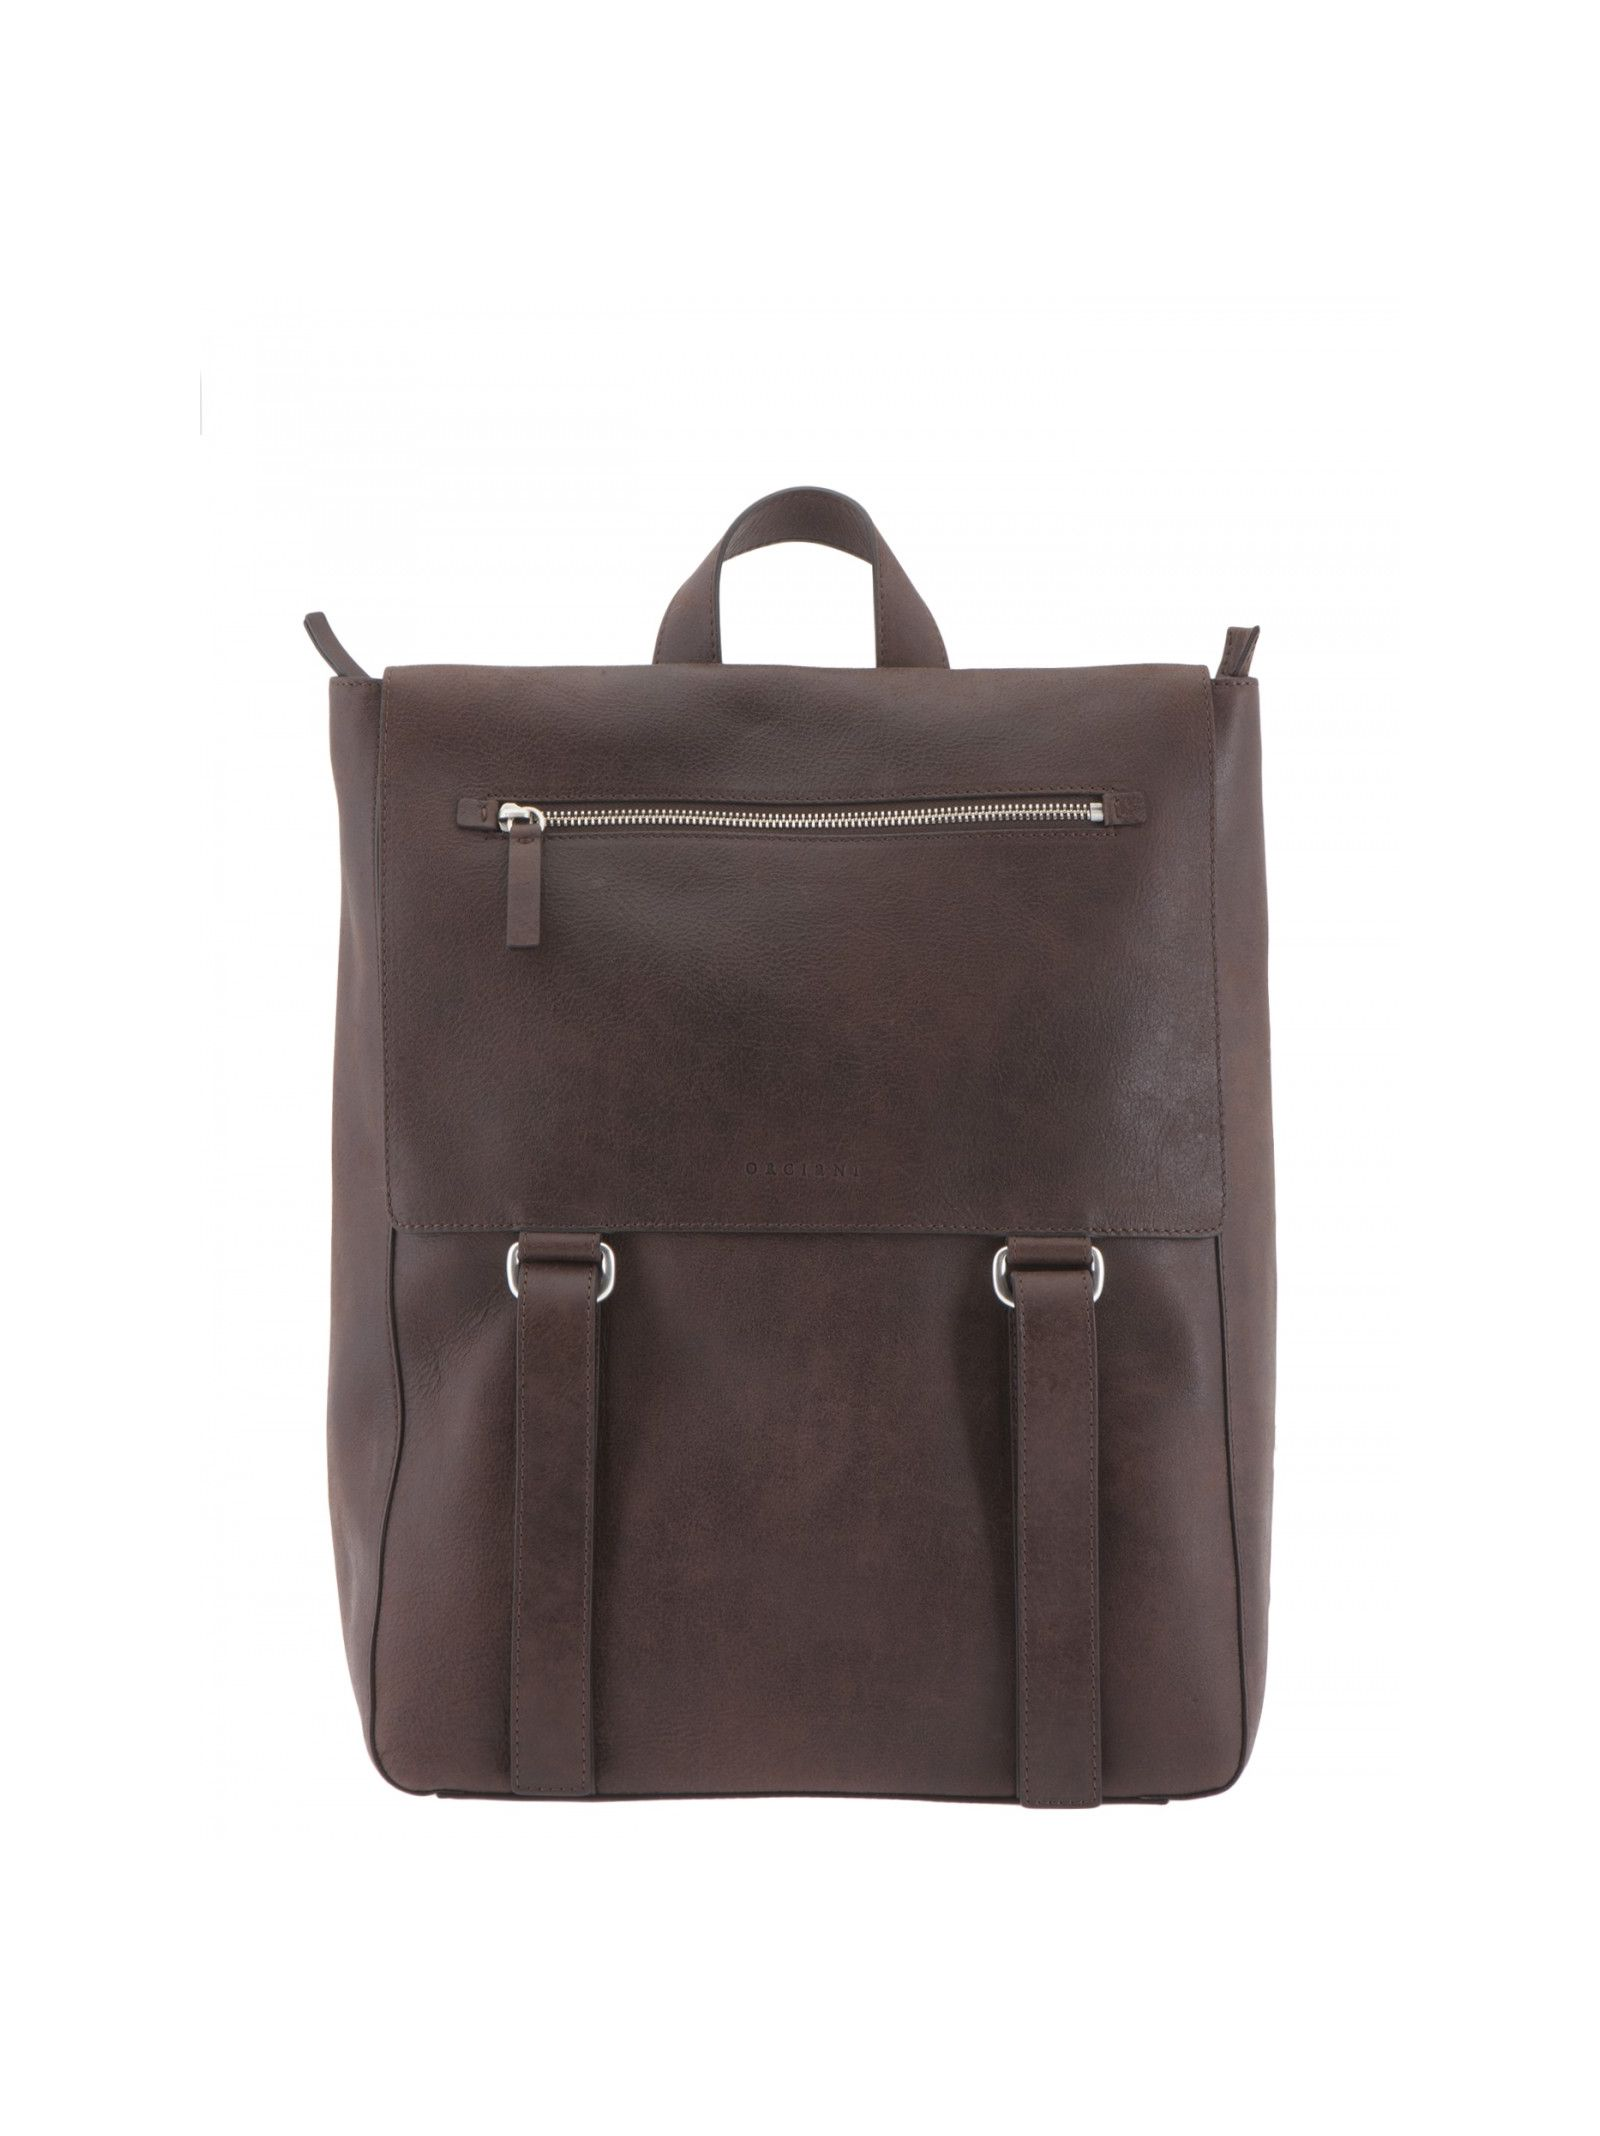 Aged leather backpack Height: 41 cm Width: 31. 5 cm Depth: 13 cm Fastening: Flap, zip Details: Aged leather backpack, Adjustable braces, Closure with flap, snap buttons and zip, One front pocket with zip, One open internal pocket, Suede lining